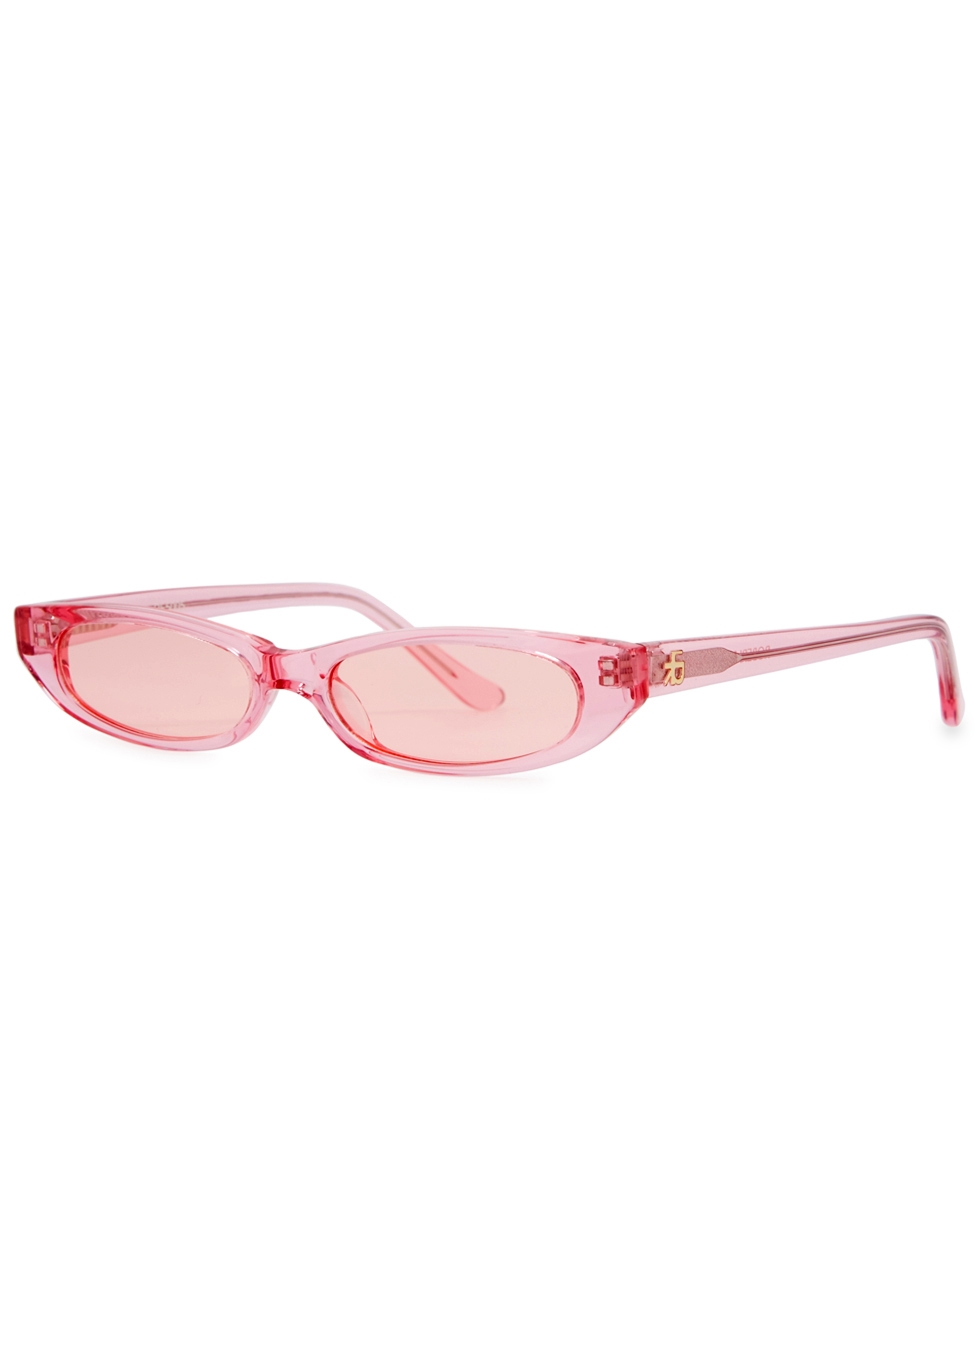 ROBERI AND FRAUD Frances Oval-Frame Sunglasses in Pink